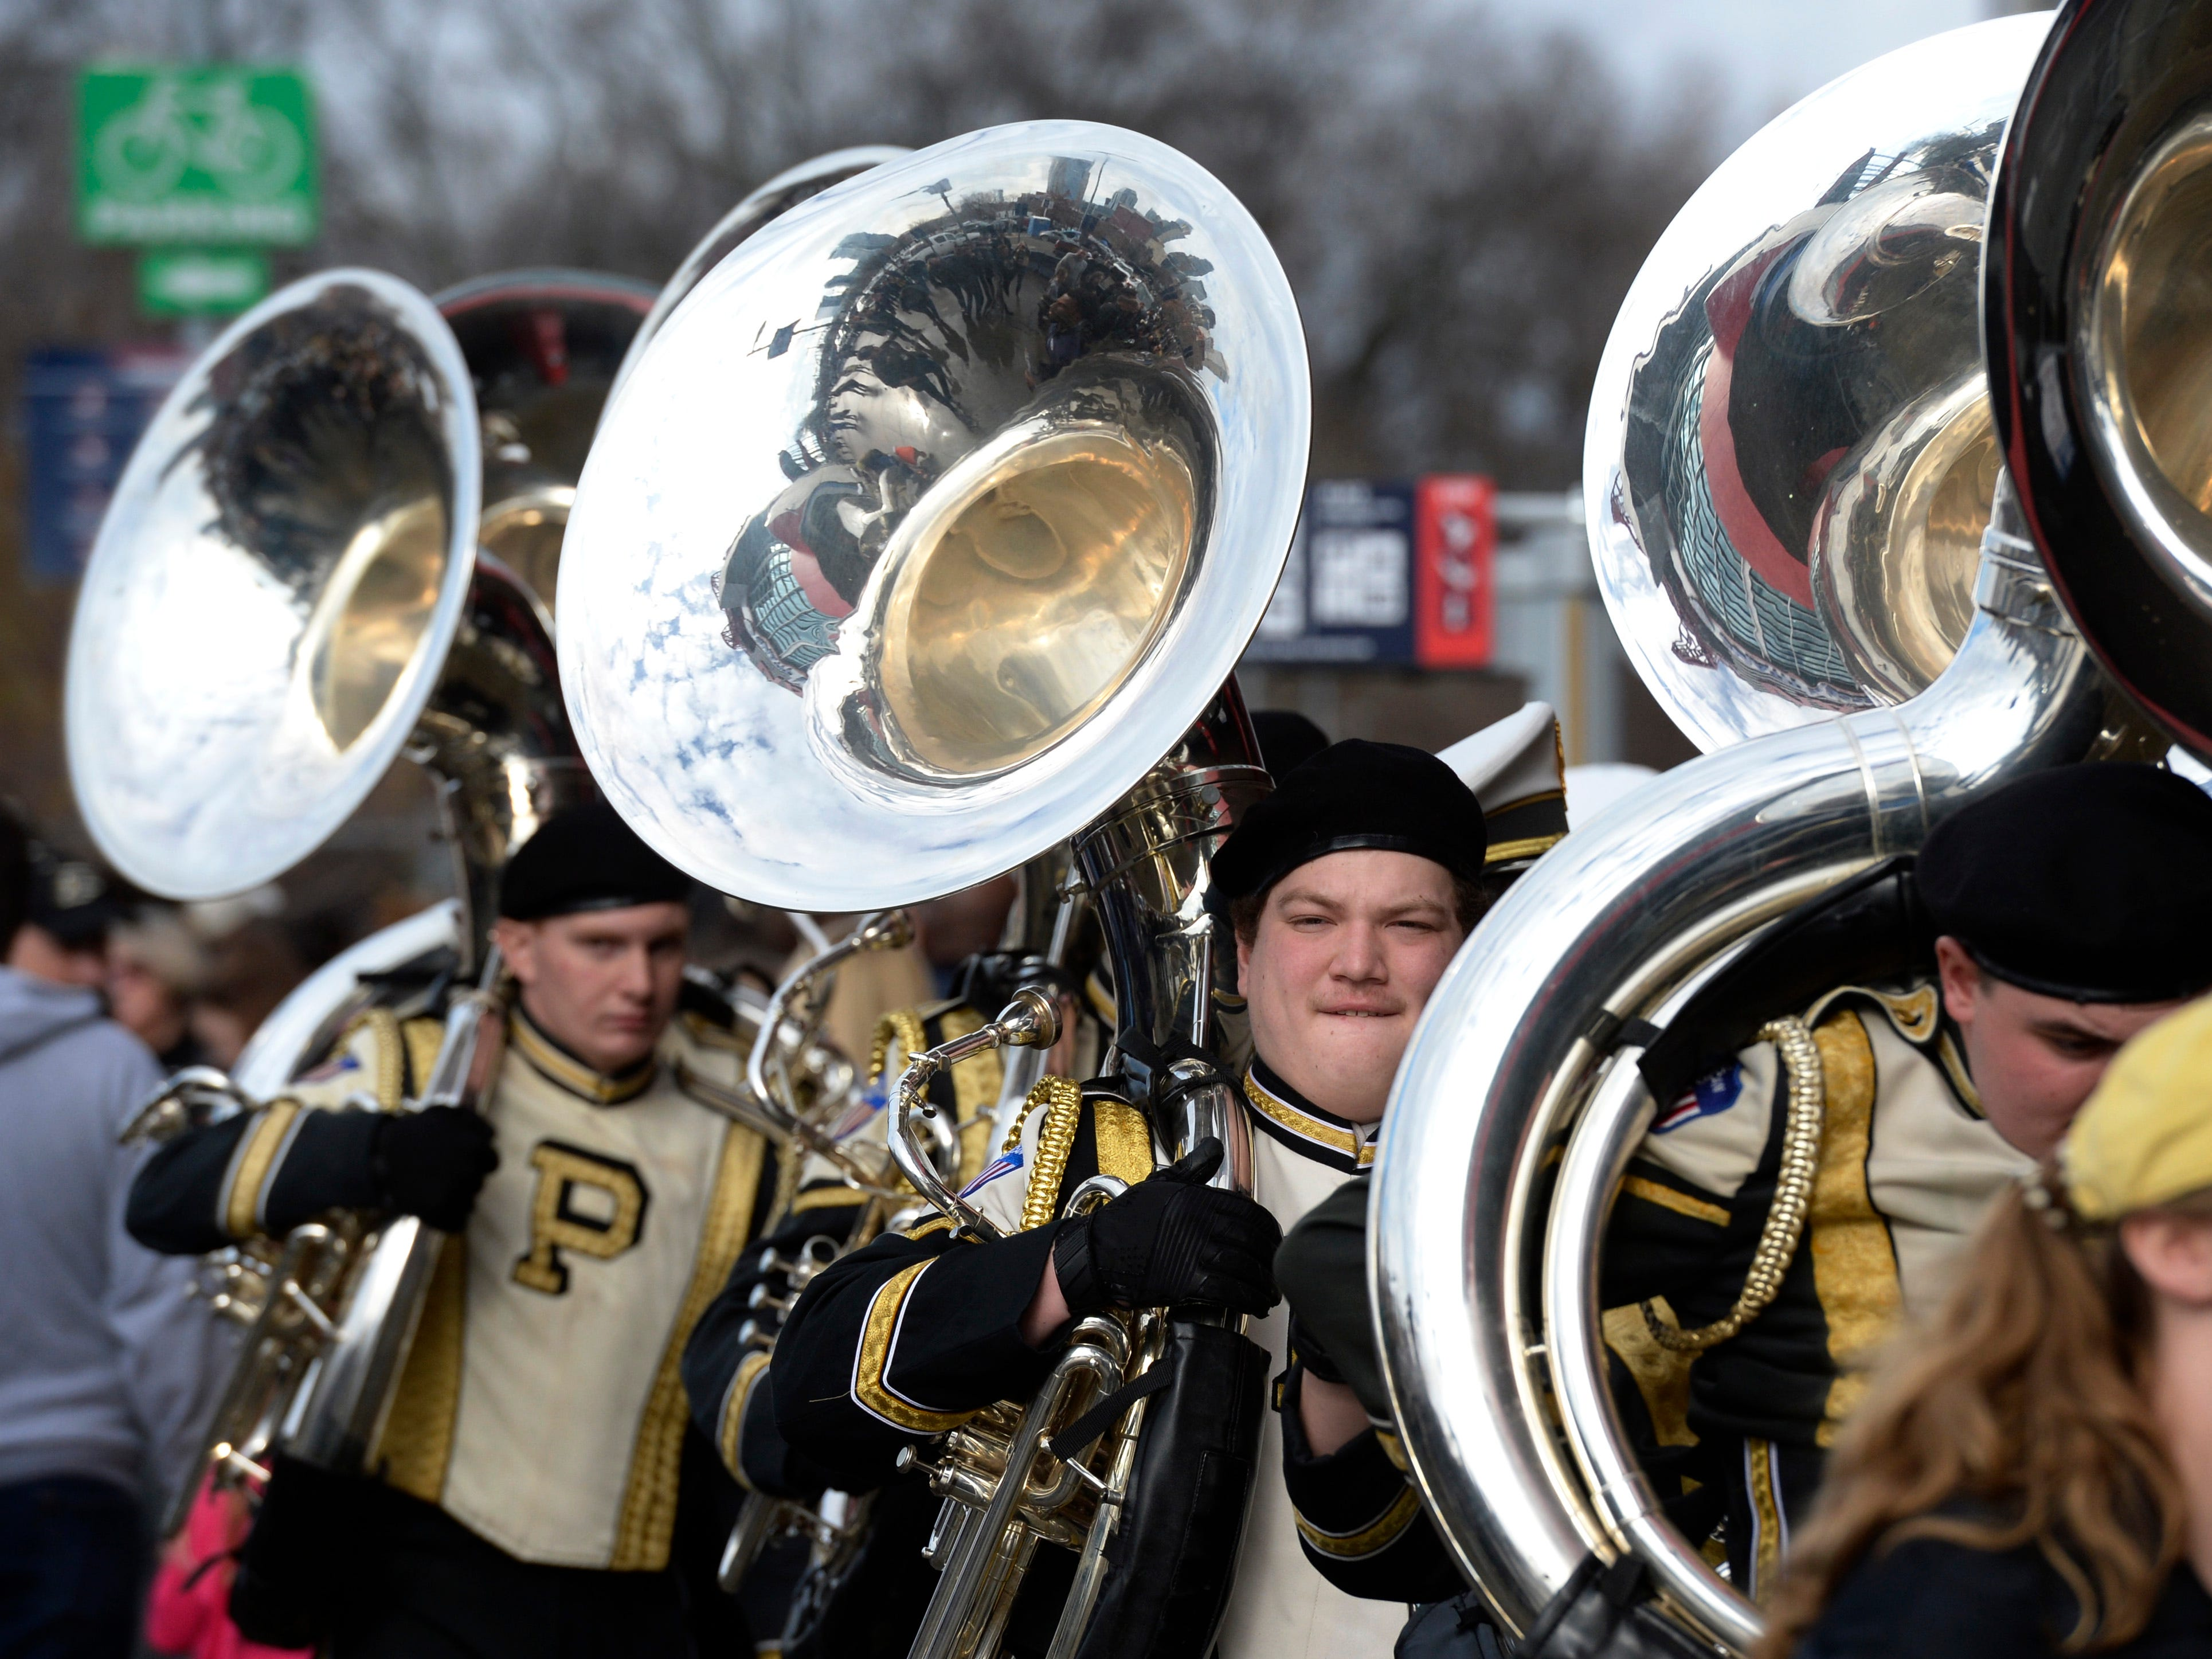 Purdue marching band arrives for the start of the Music City Bowl NCAA college football game Friday, Dec. 28, 2018, at Nissan Stadium in Nashville, Tenn.